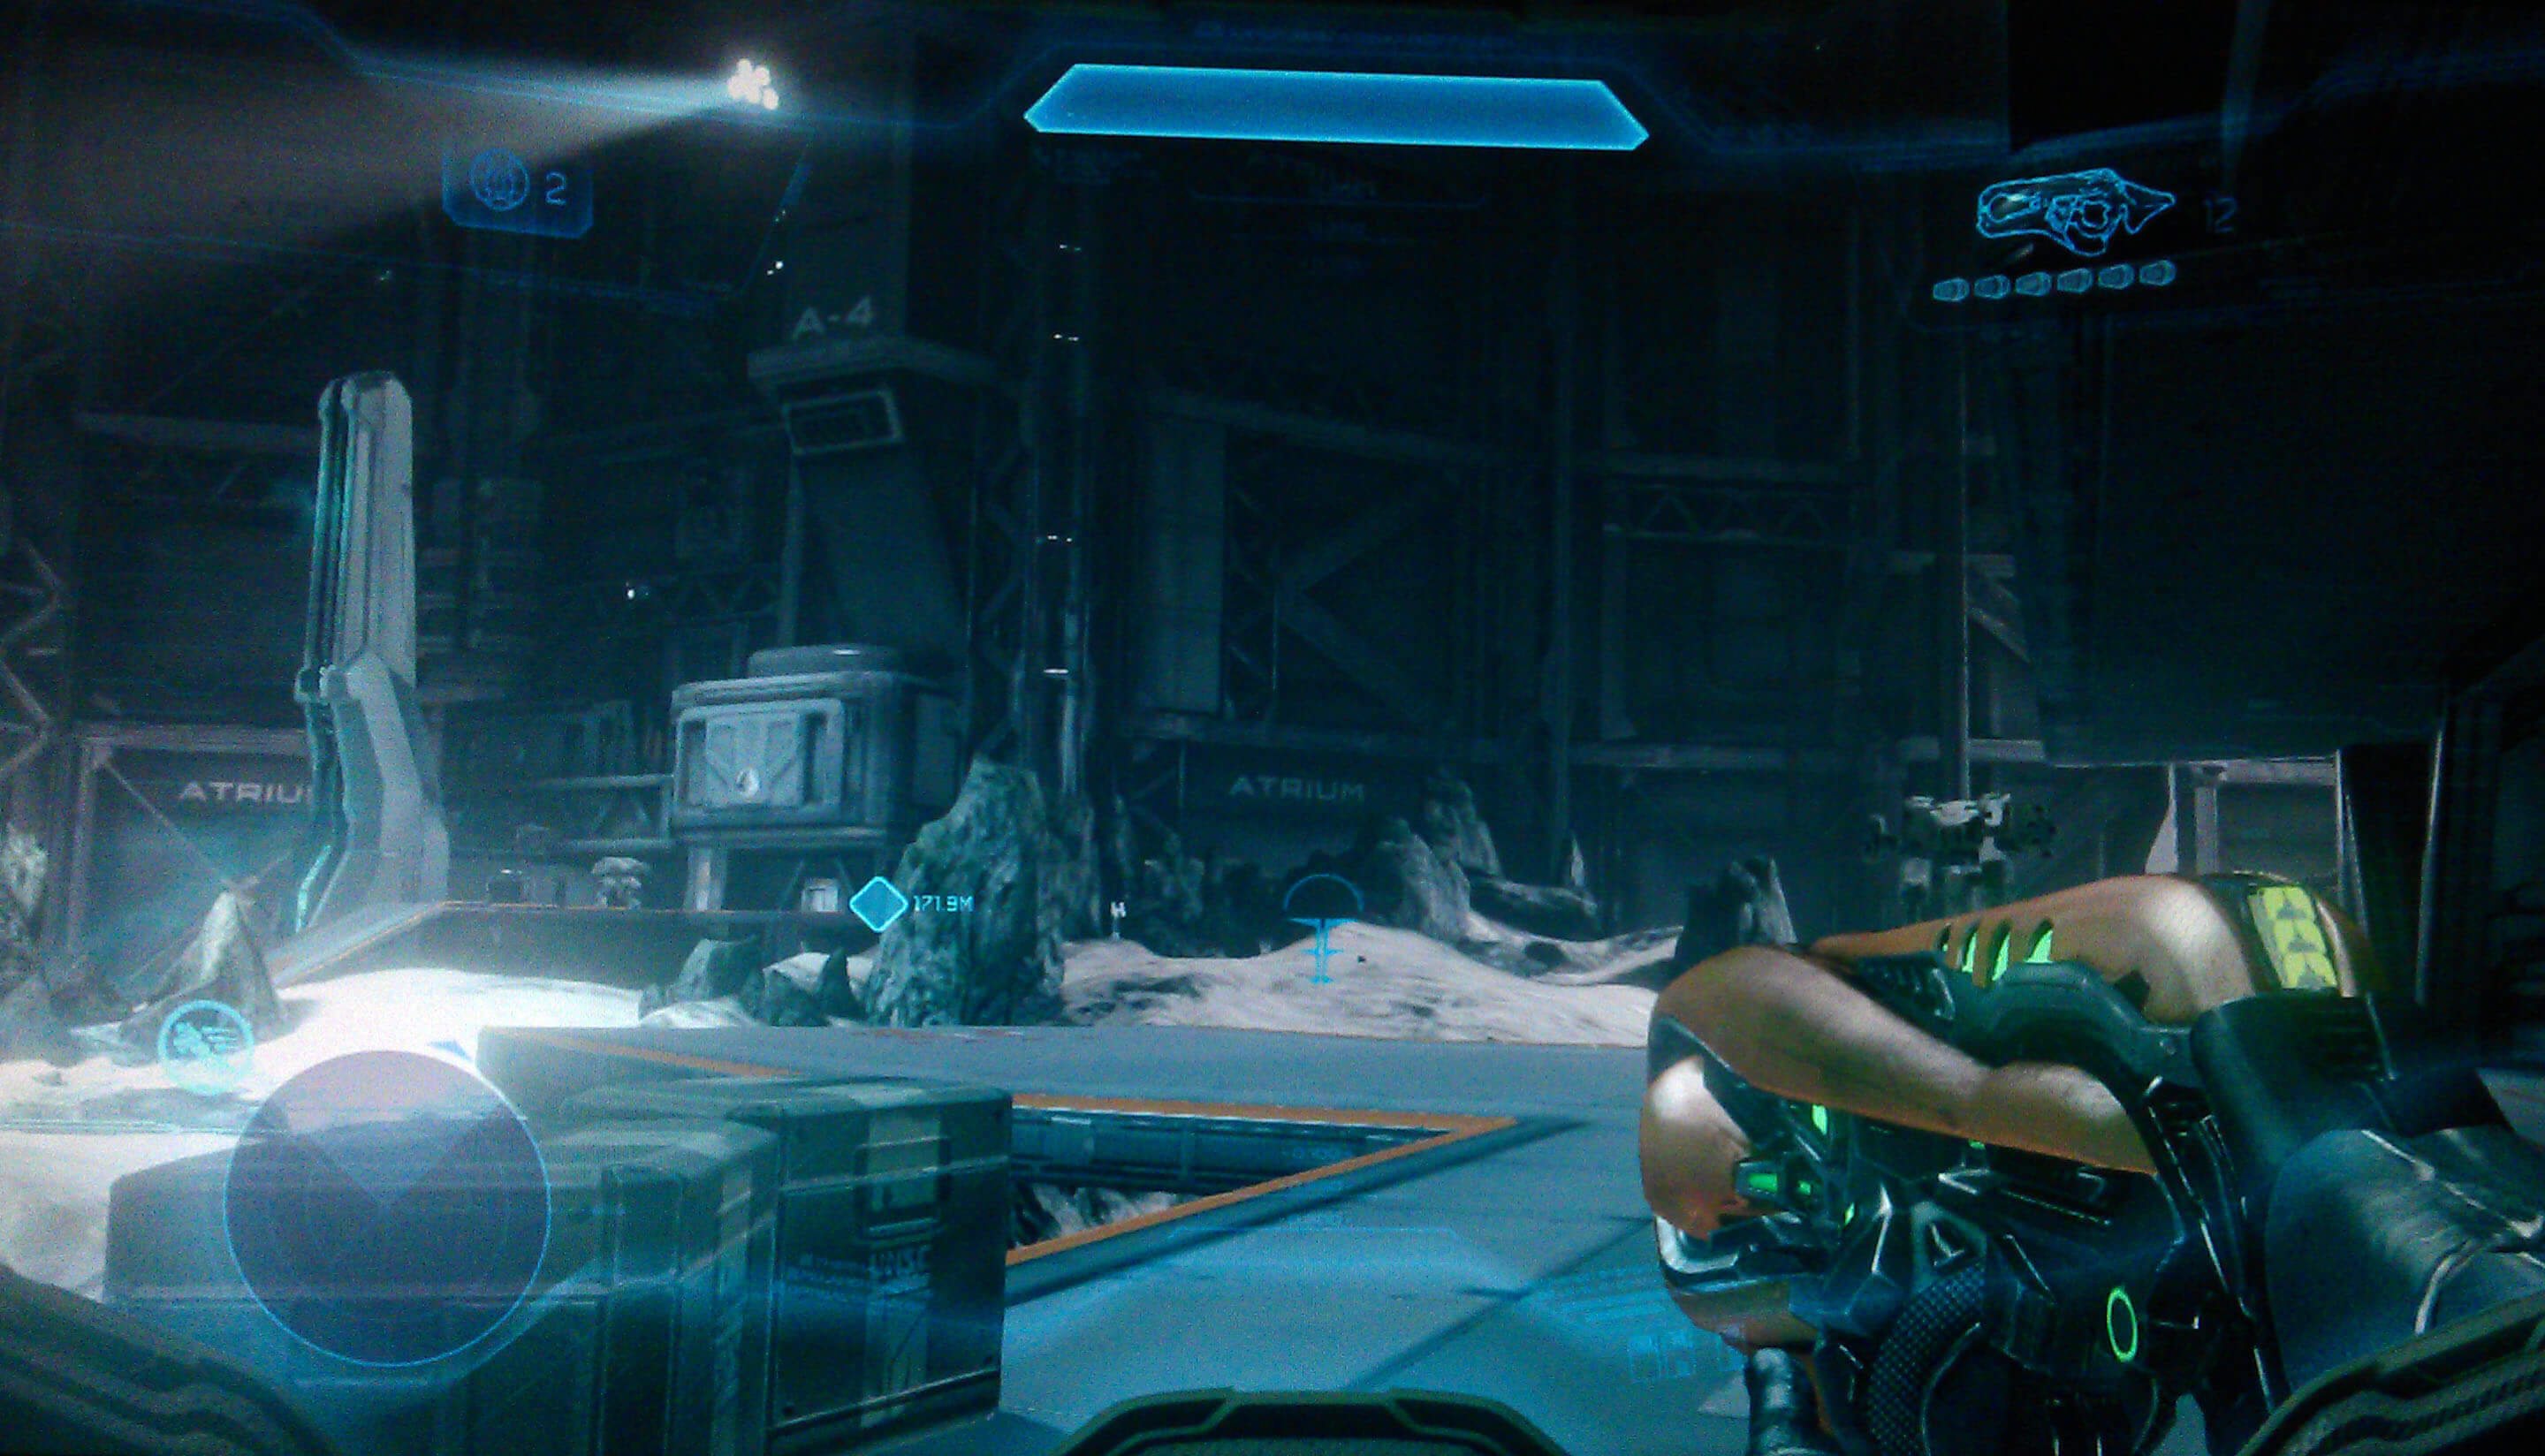 Halo 4 Composer Terminal Location - Video Games, Wikis, Cheats